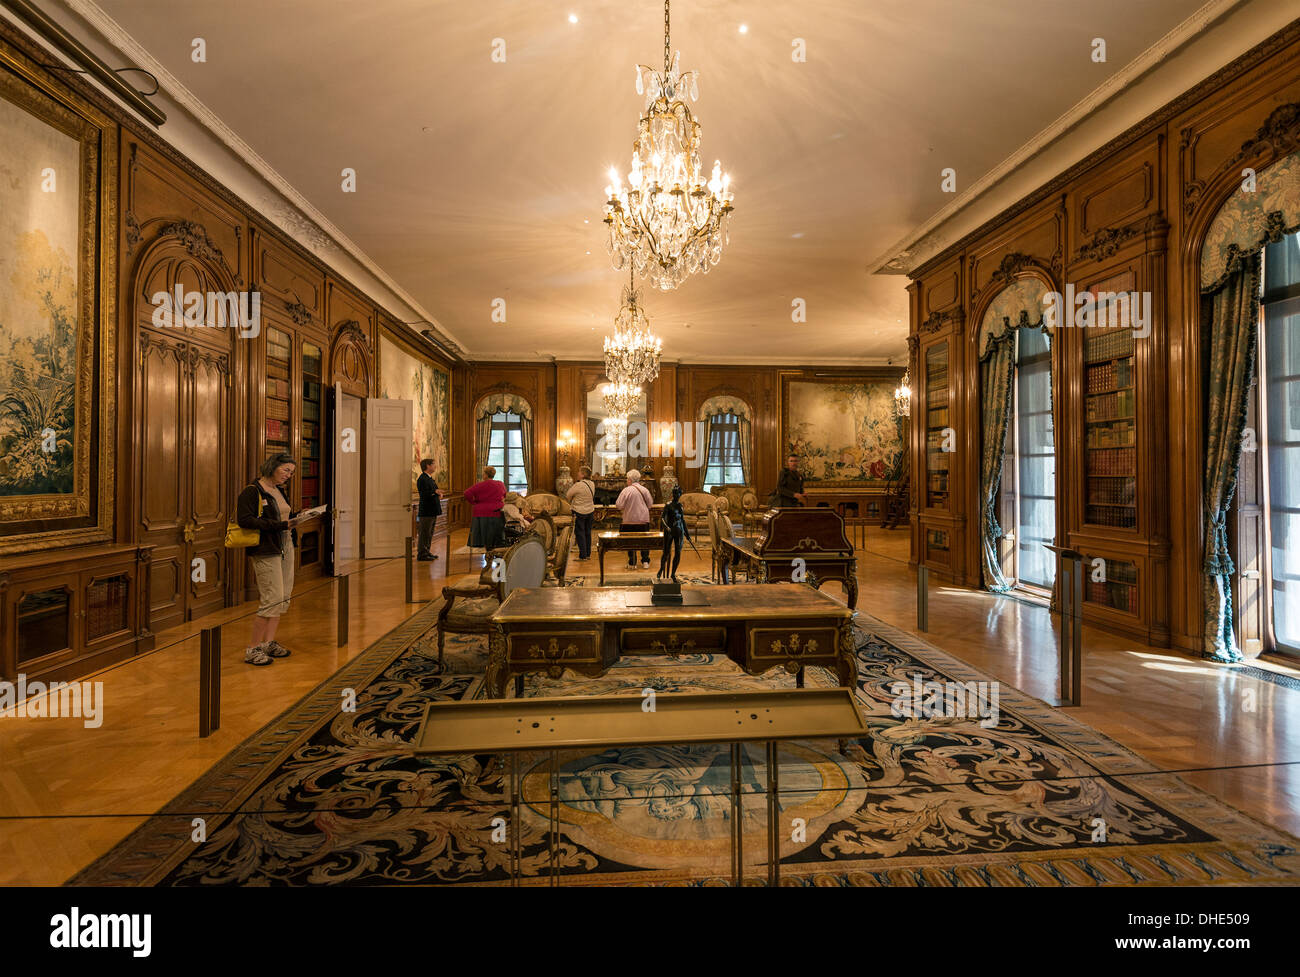 The interior of the beautiful huntington art gallery at for The huntington